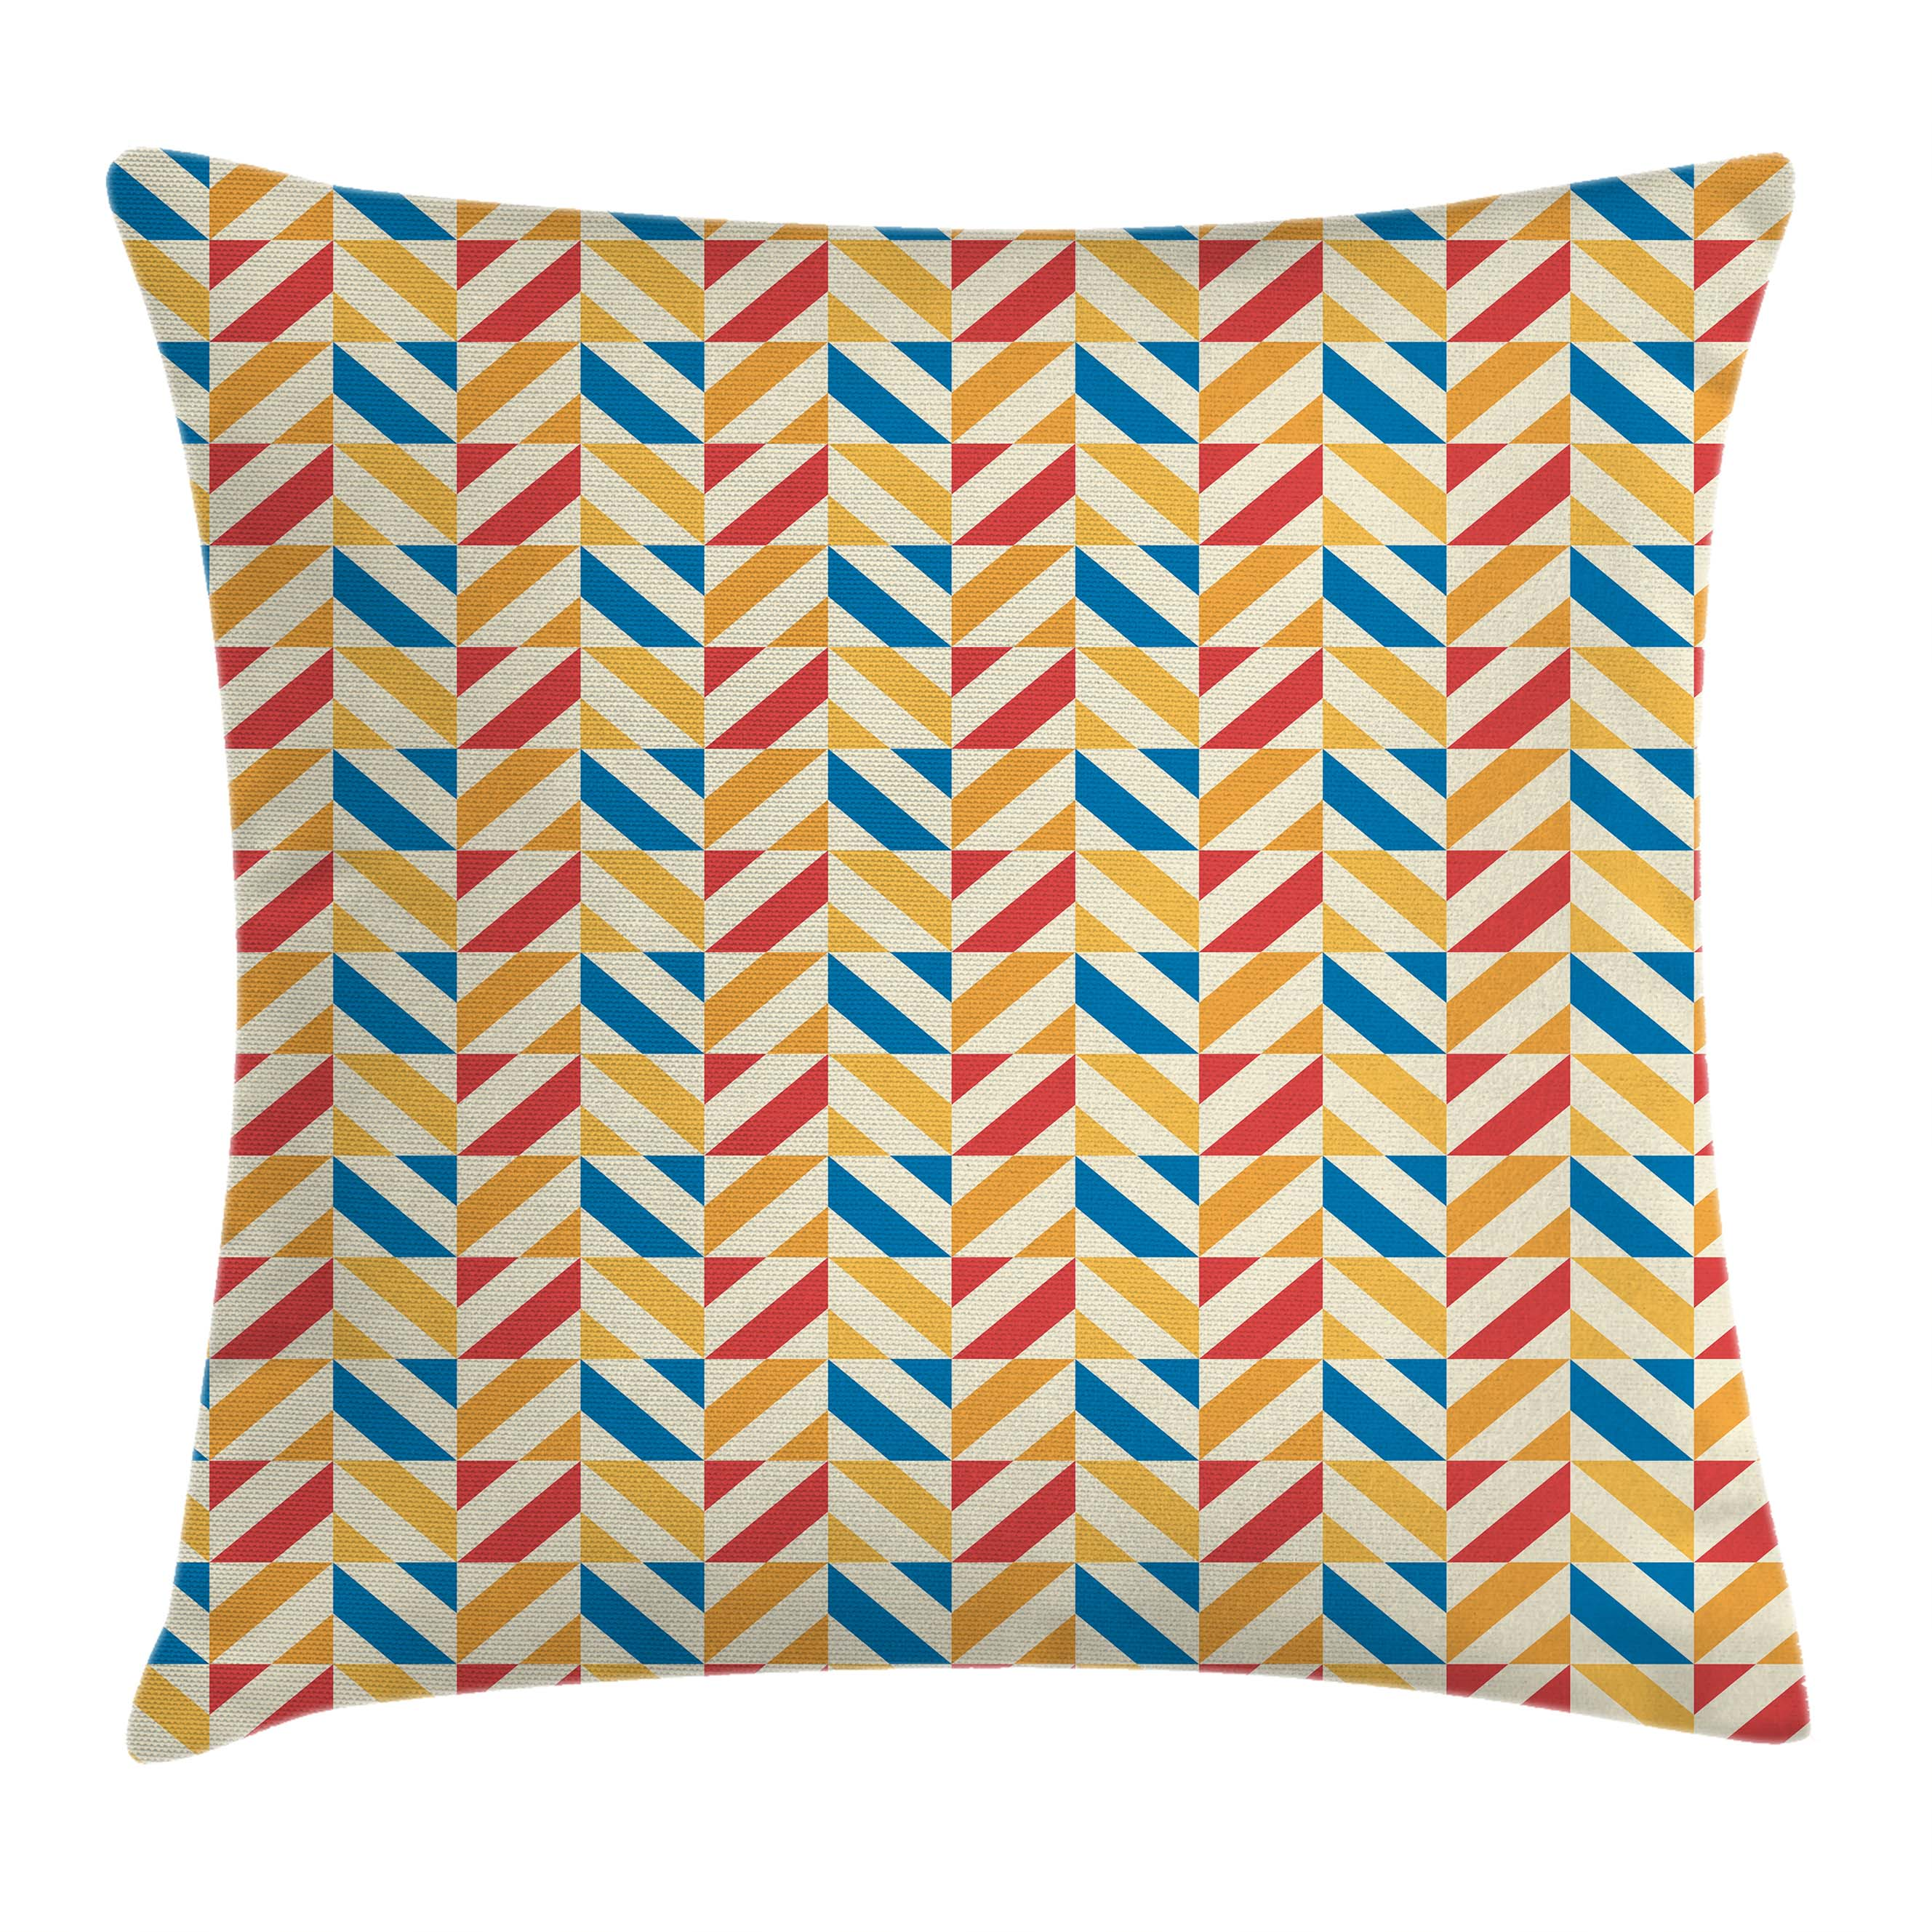 Kids Throw Pillow Cushion Cover, Checkered Pattern with Shabby Colored Diagonally Striped Squares Retro Tile, Decorative Square Accent Pillow Case, 16 X 16 Inches, Blue Marigold Scarlet, by Ambesonne